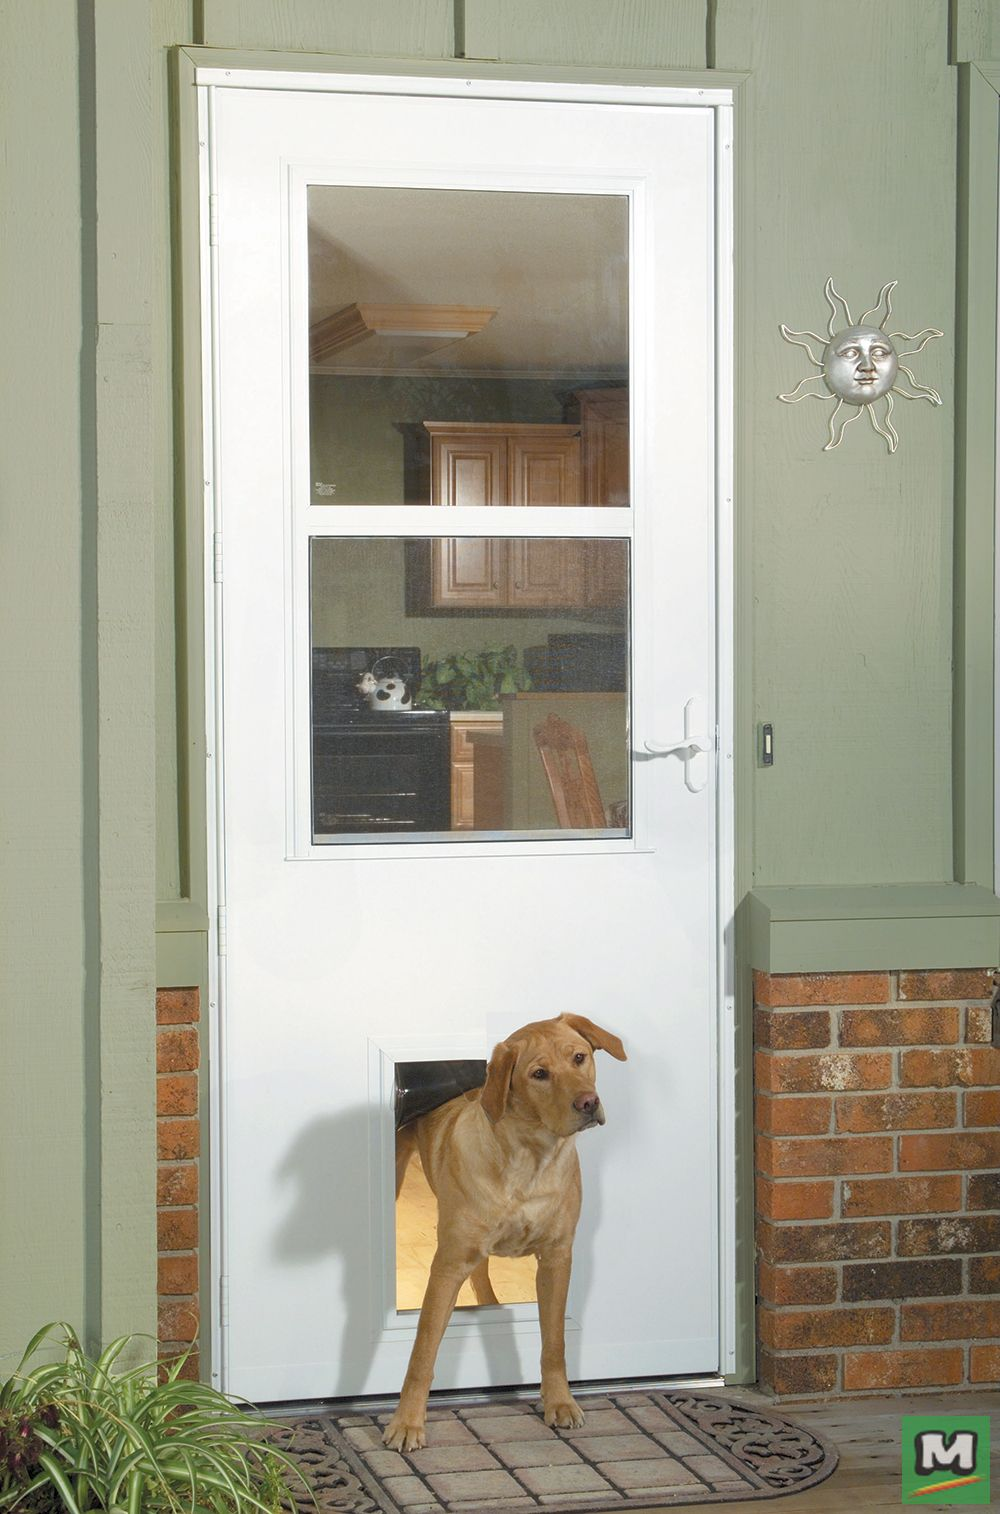 Let Your Pet Out With This Larson Westminster White Finish Self Storing Storm And Screen Door With A Built In Pet Door Larson Storm Doors Storm Door Dog Door